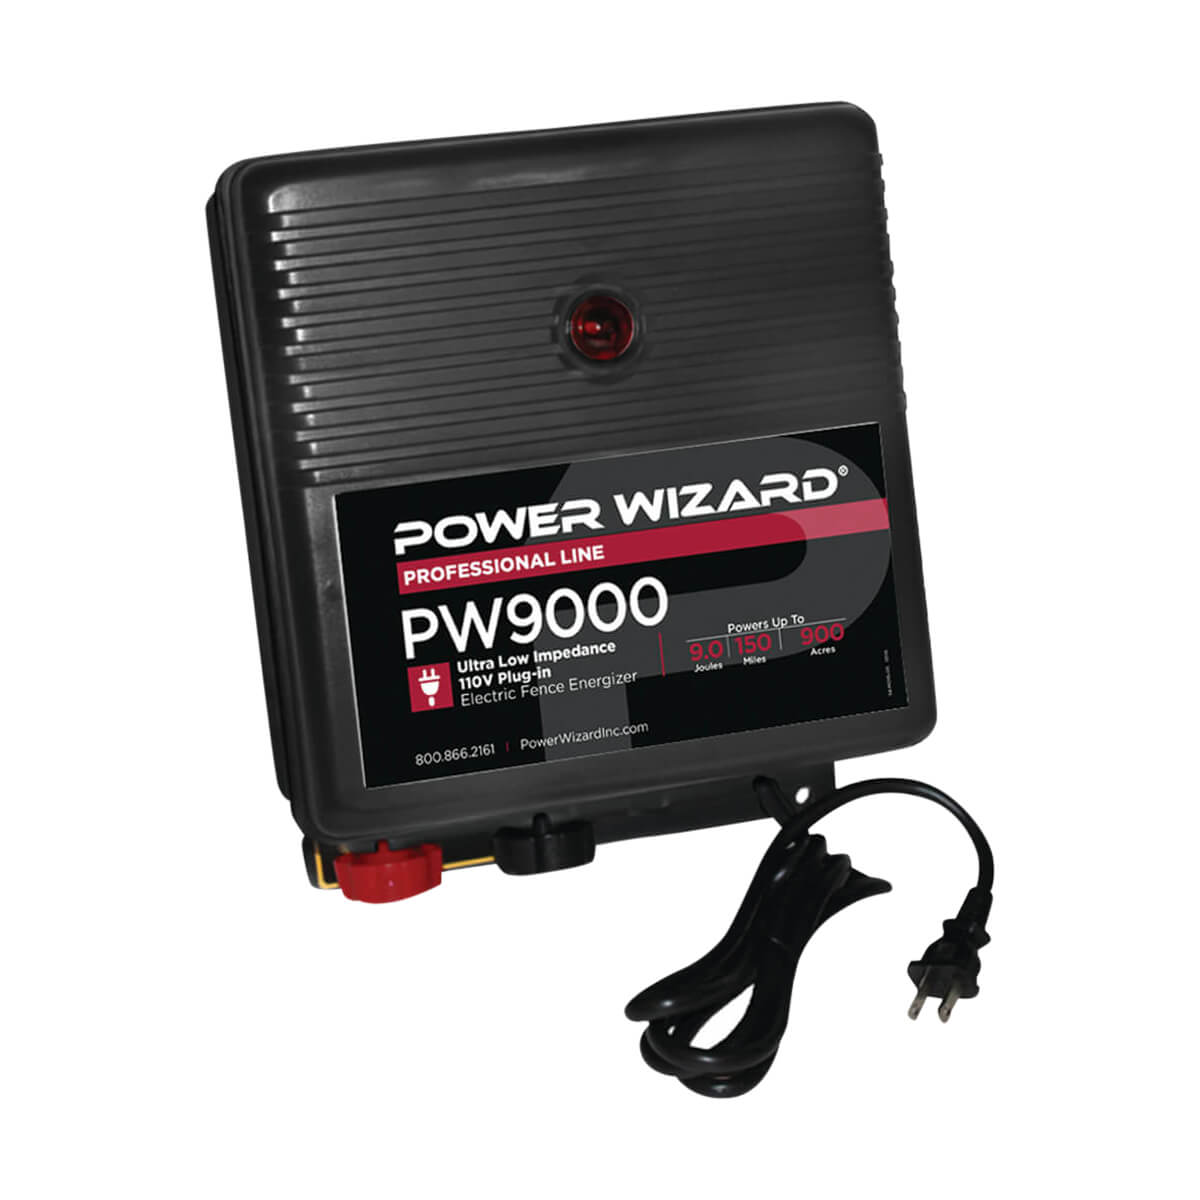 Power Wizard 110V Plug-in Energizer - PW9000